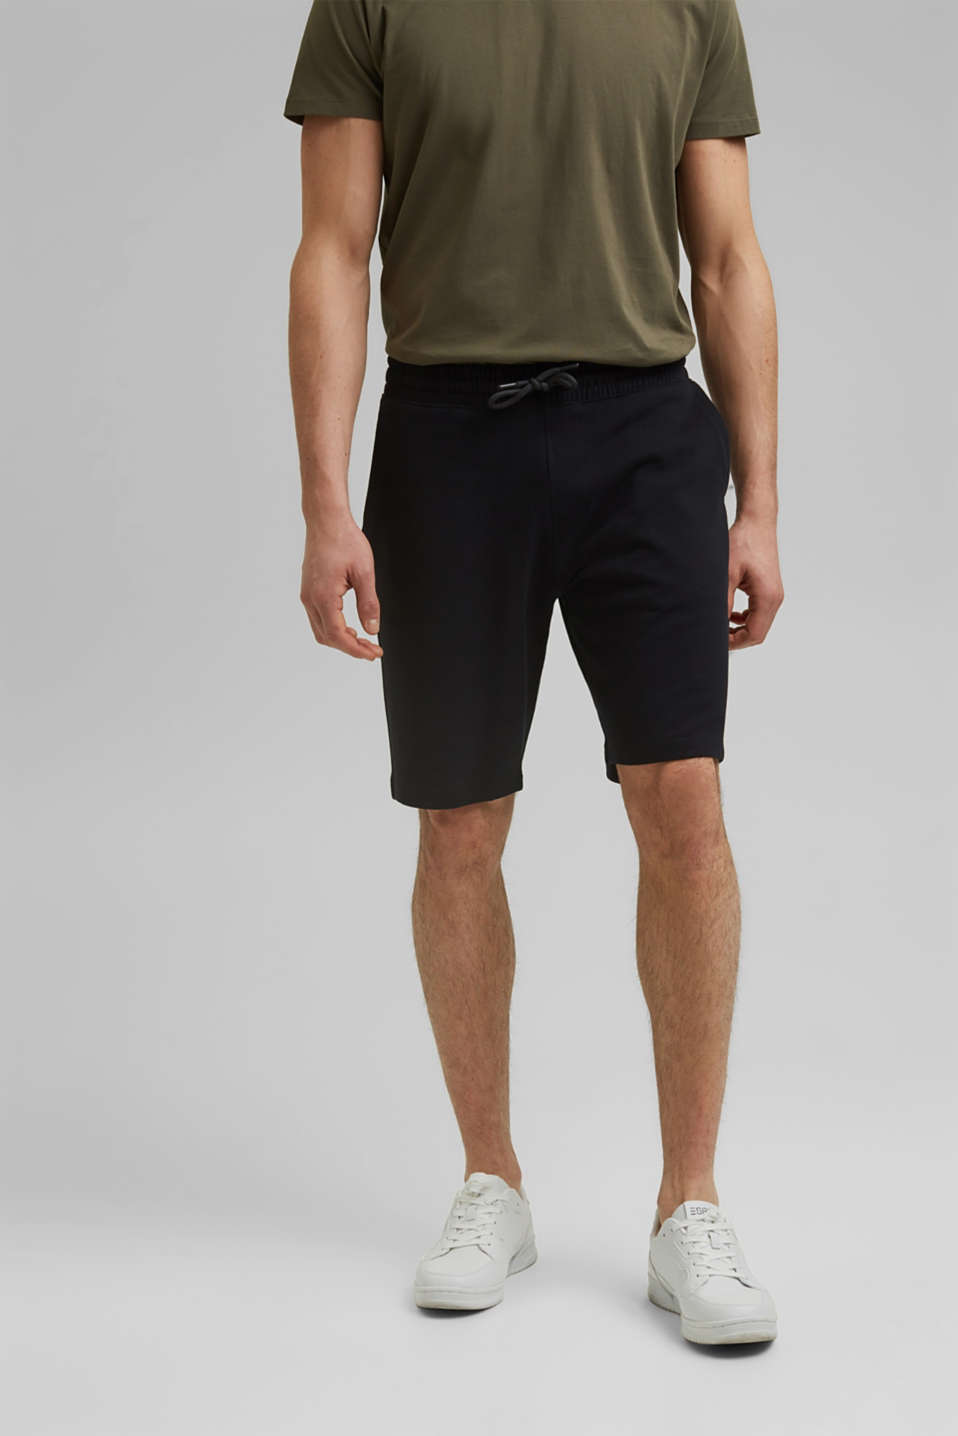 edc - Sweatshort van 100% organic cotton